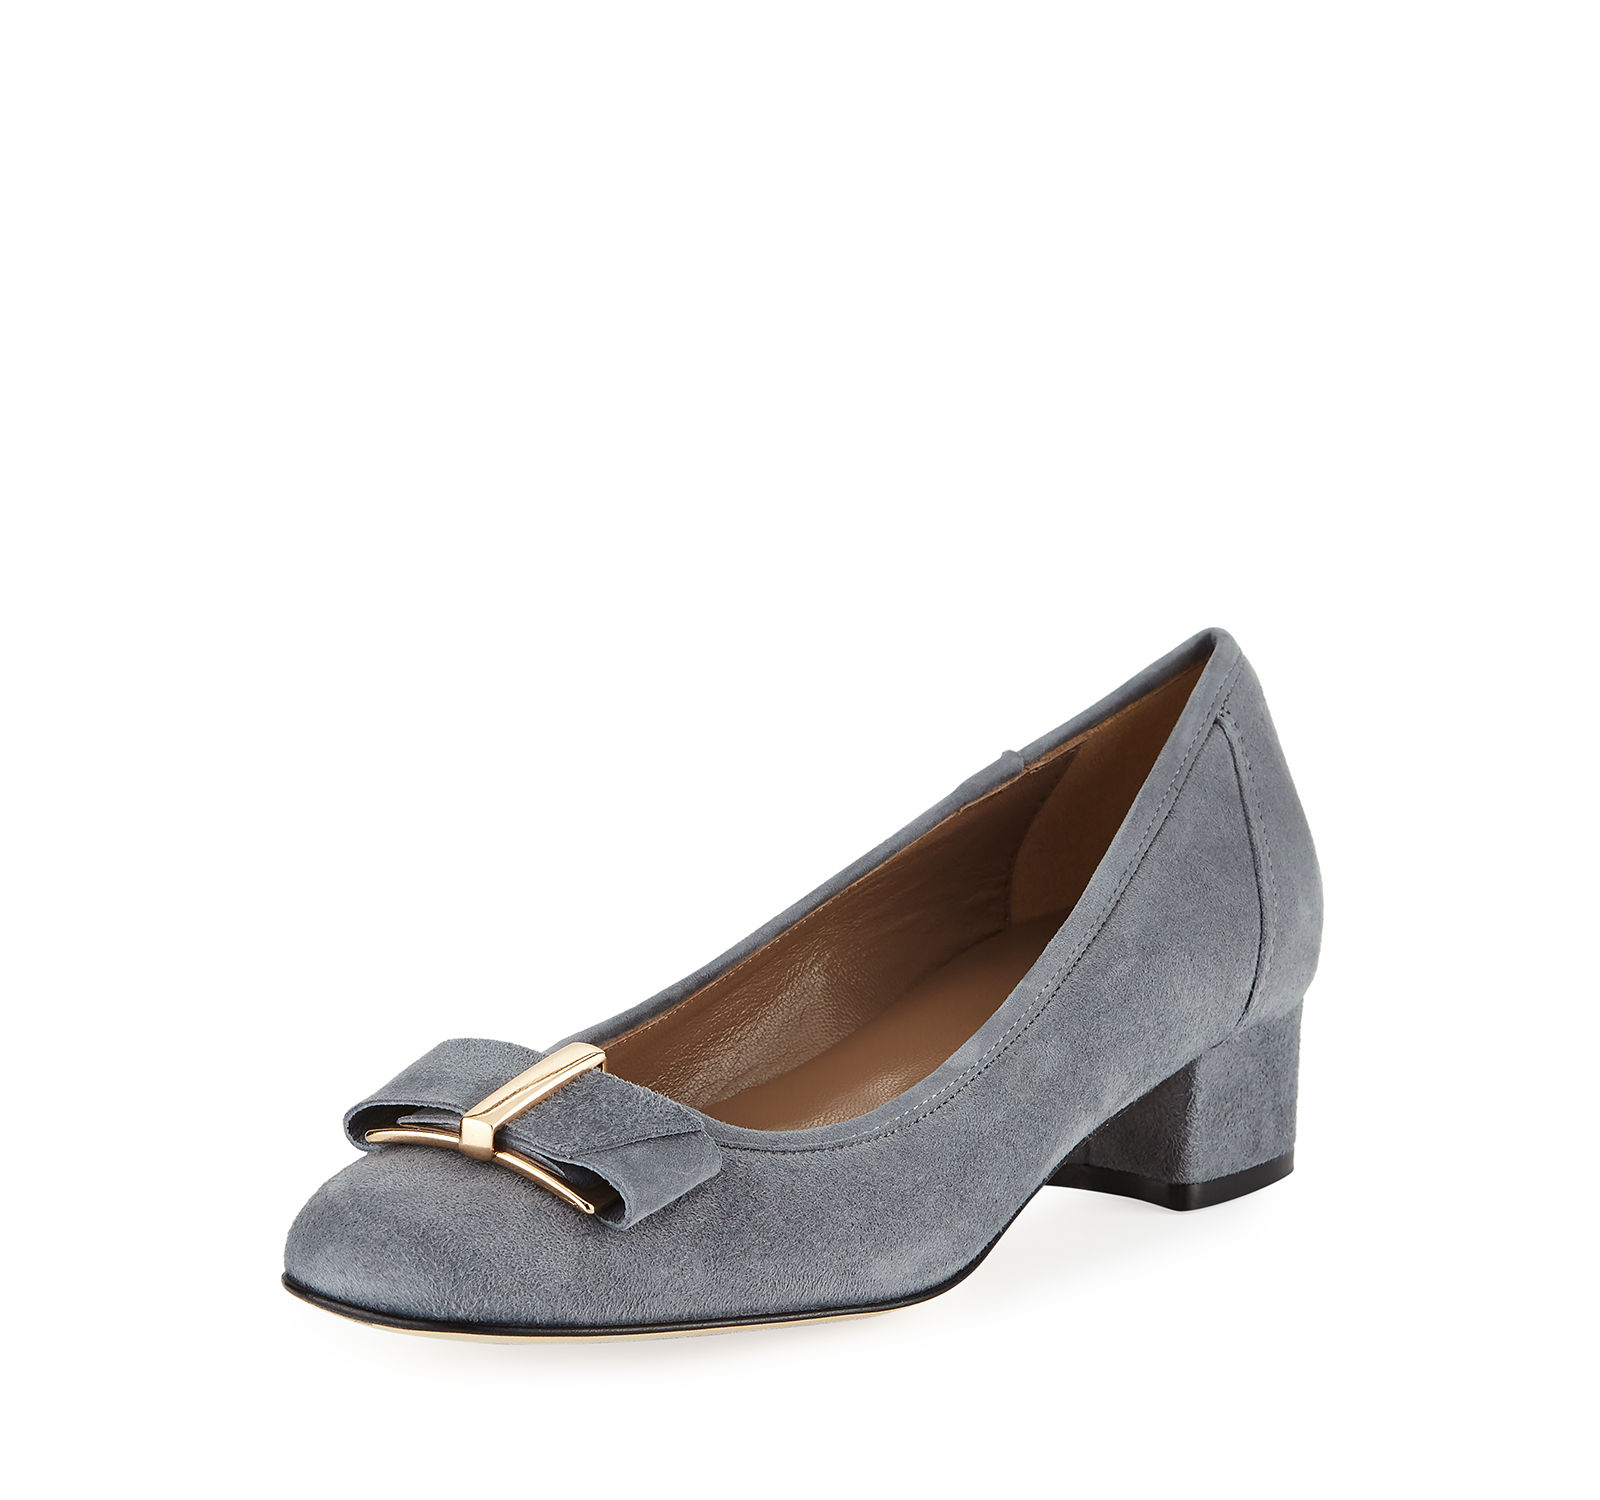 Man/Woman Sesto Meucci Fay Suede Suede Suede Bow Pump   High Quality Product a9a3f3